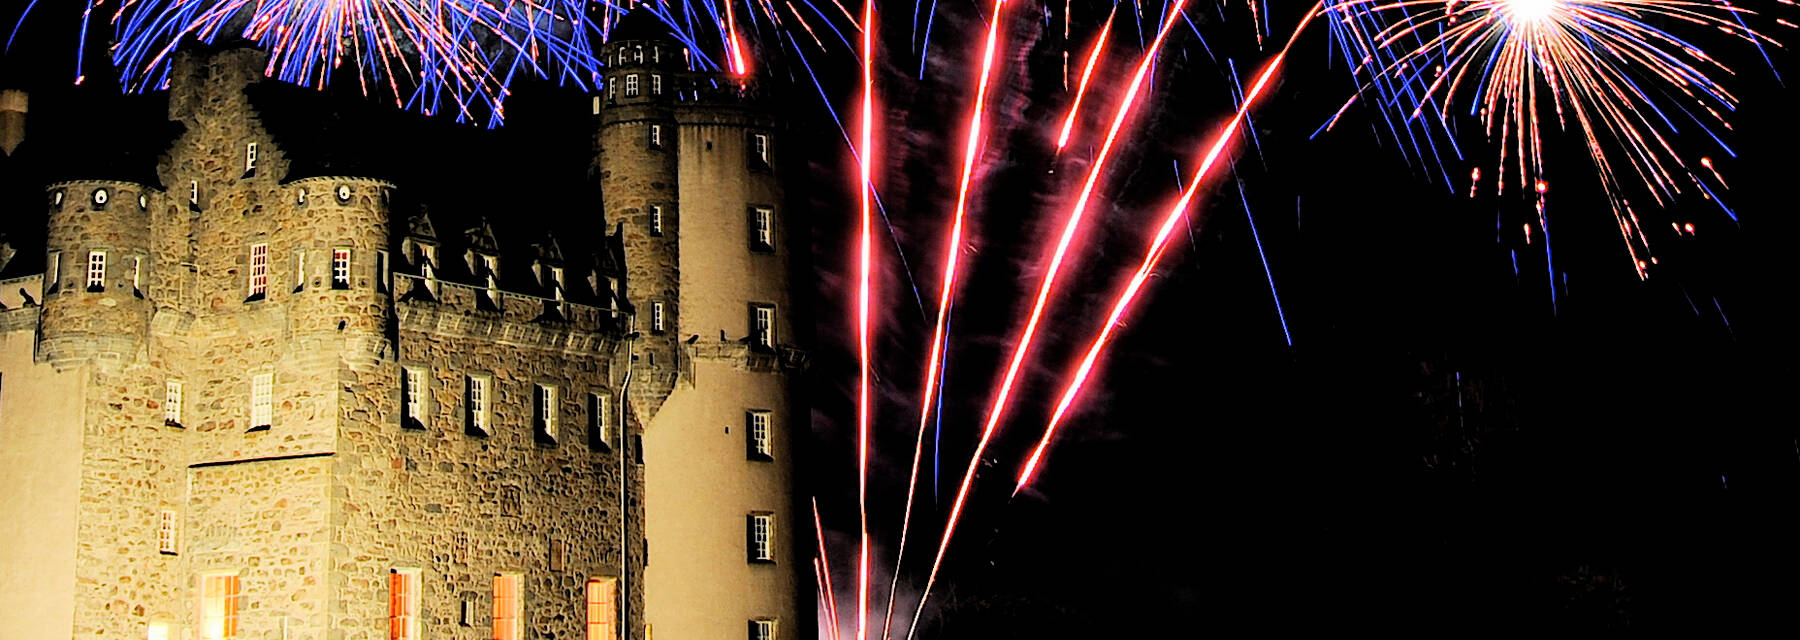 Fireworks at Castle Fraser